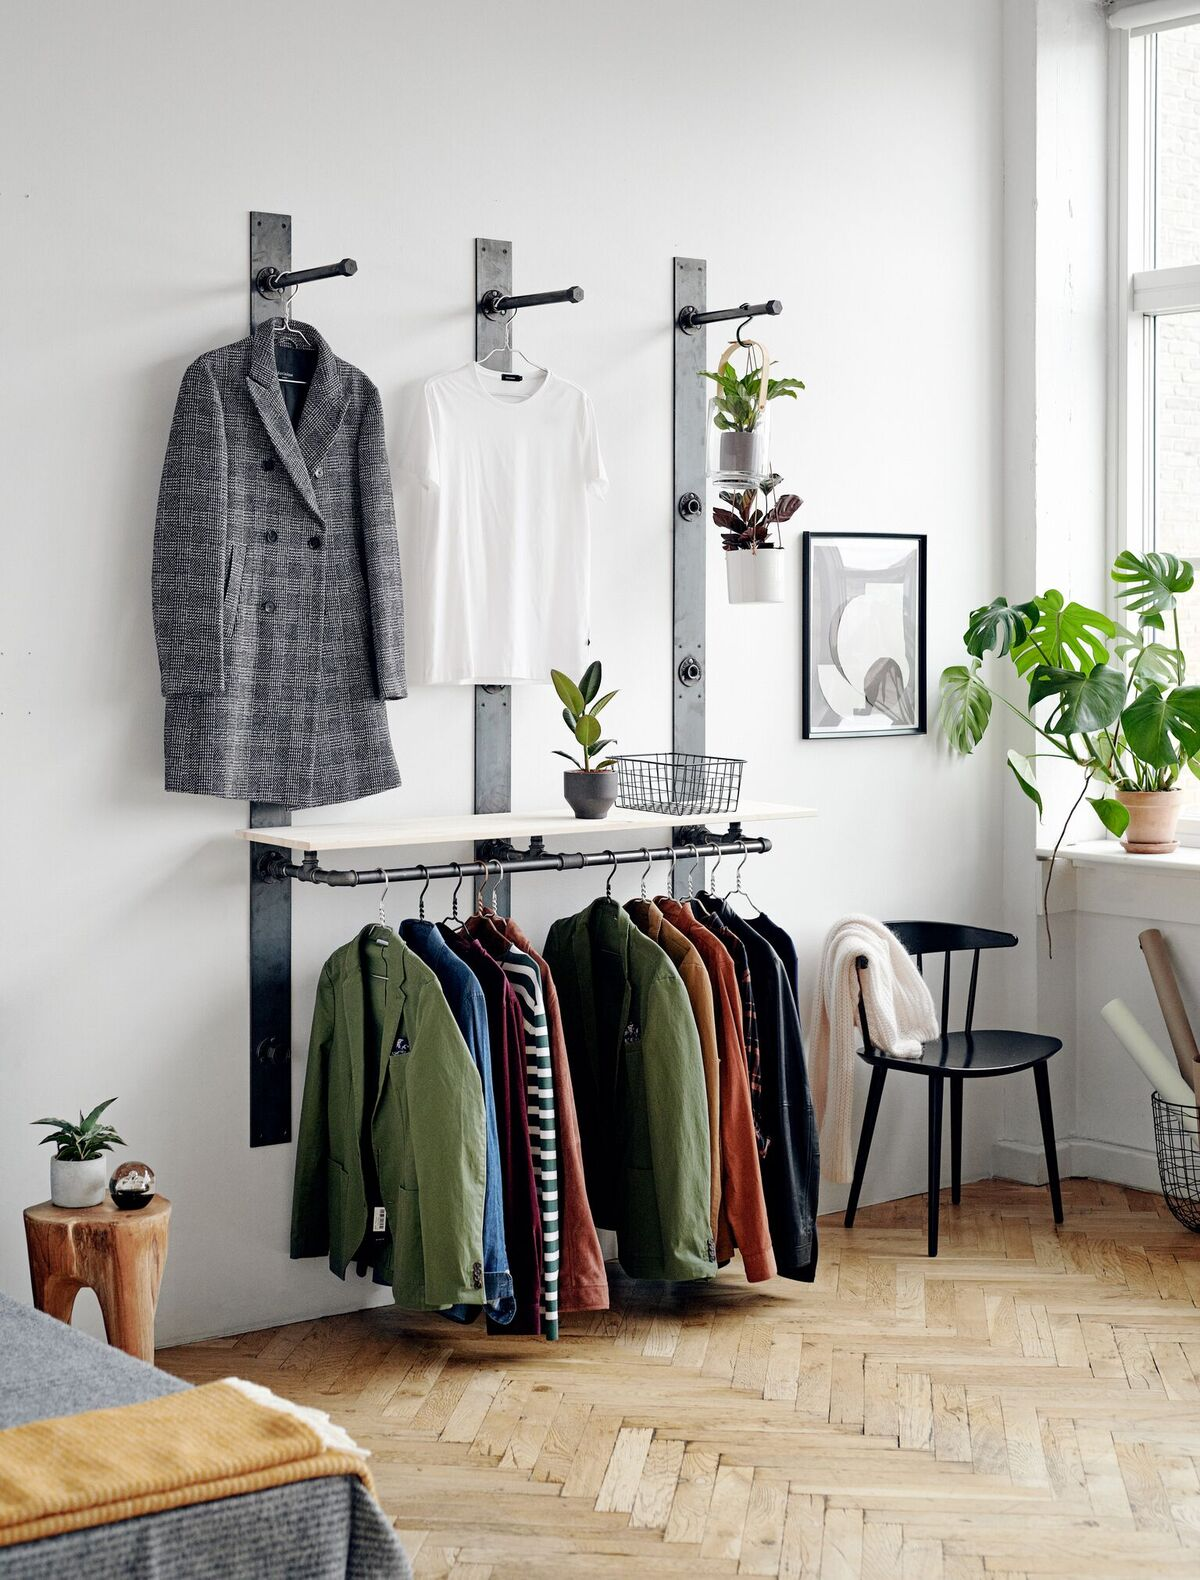 RackBuddy Elements wardrobe solution - hang your clothes on hooks